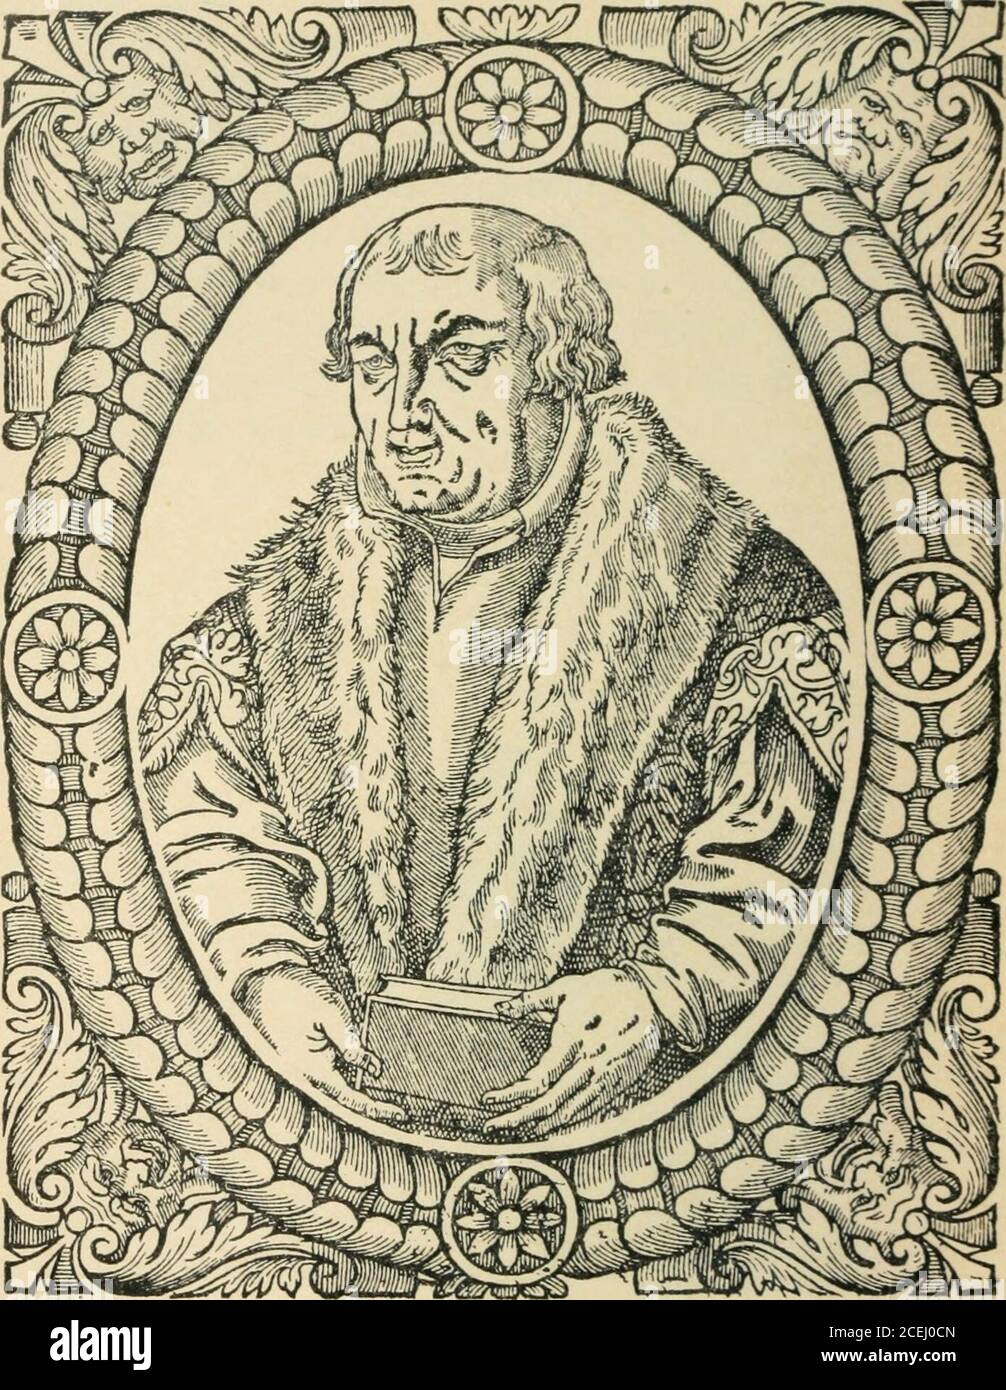 . Beza's Icones, contemporary portraits of reformers of religion and letters; being facsimile reproductions of the portraits in Beza's Icones (1580) and in Goulard's edition (1581). 64. PRINCE GEORGE OF ANHALT. George, Prince of Anhalt (Georgius Anhaltinus Princeps) ANHALT, a duchy in Central Germany, withDessau for its capital, rose to the positionof an independent principality in the firsthalf of the thirteenth century. On thedeath of Henry I., in 1252, it was par-titioned into three—Ascania, Bernburg, and Zerbst.Of the Protestant Princes of Germany no one washeld in greater honour or admitt Stock Photo